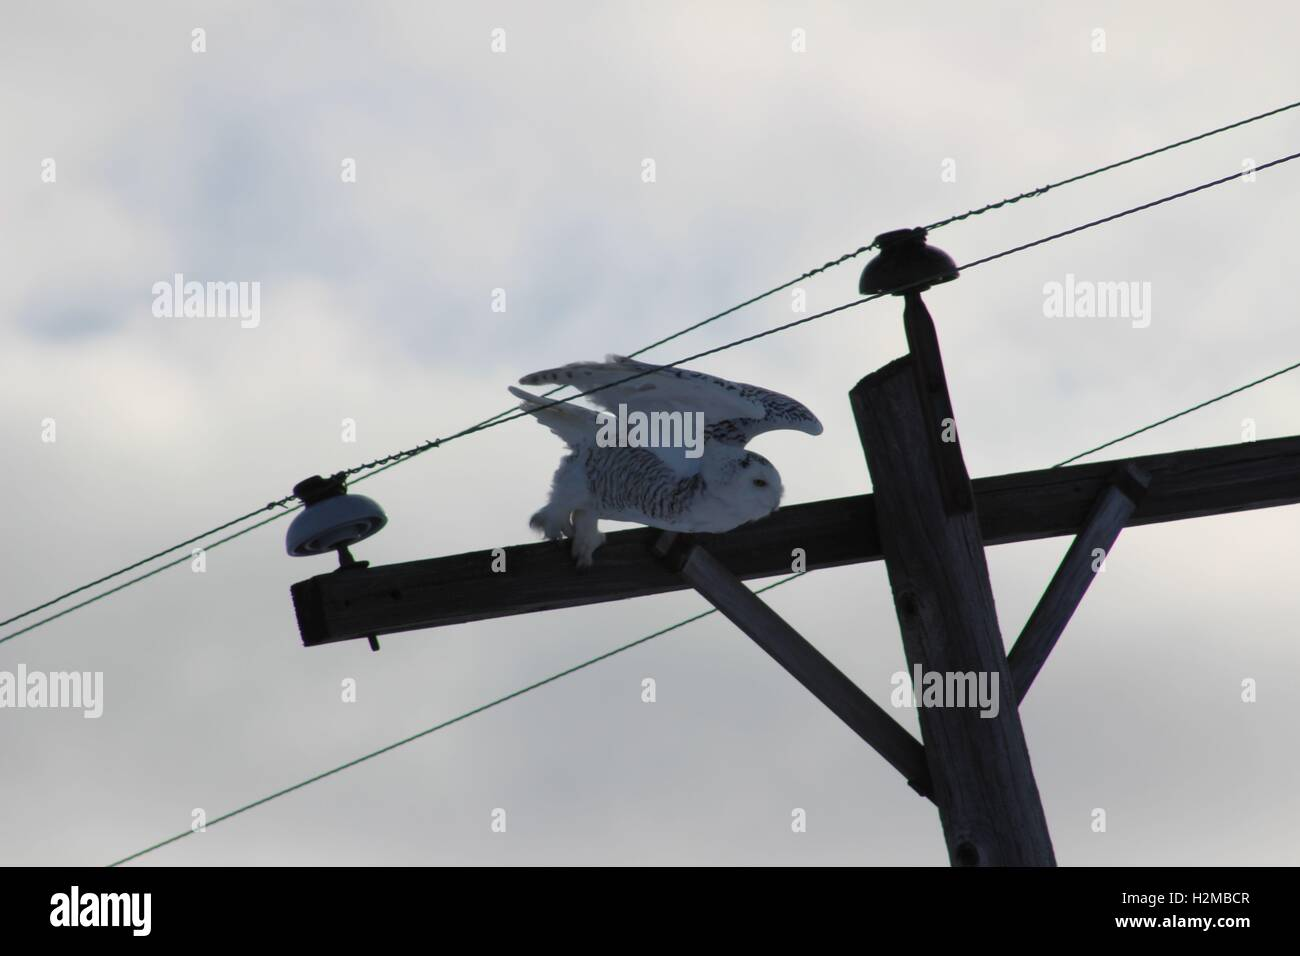 Snowy Owl Swooping Down From A Telephone Pole - Stock Image